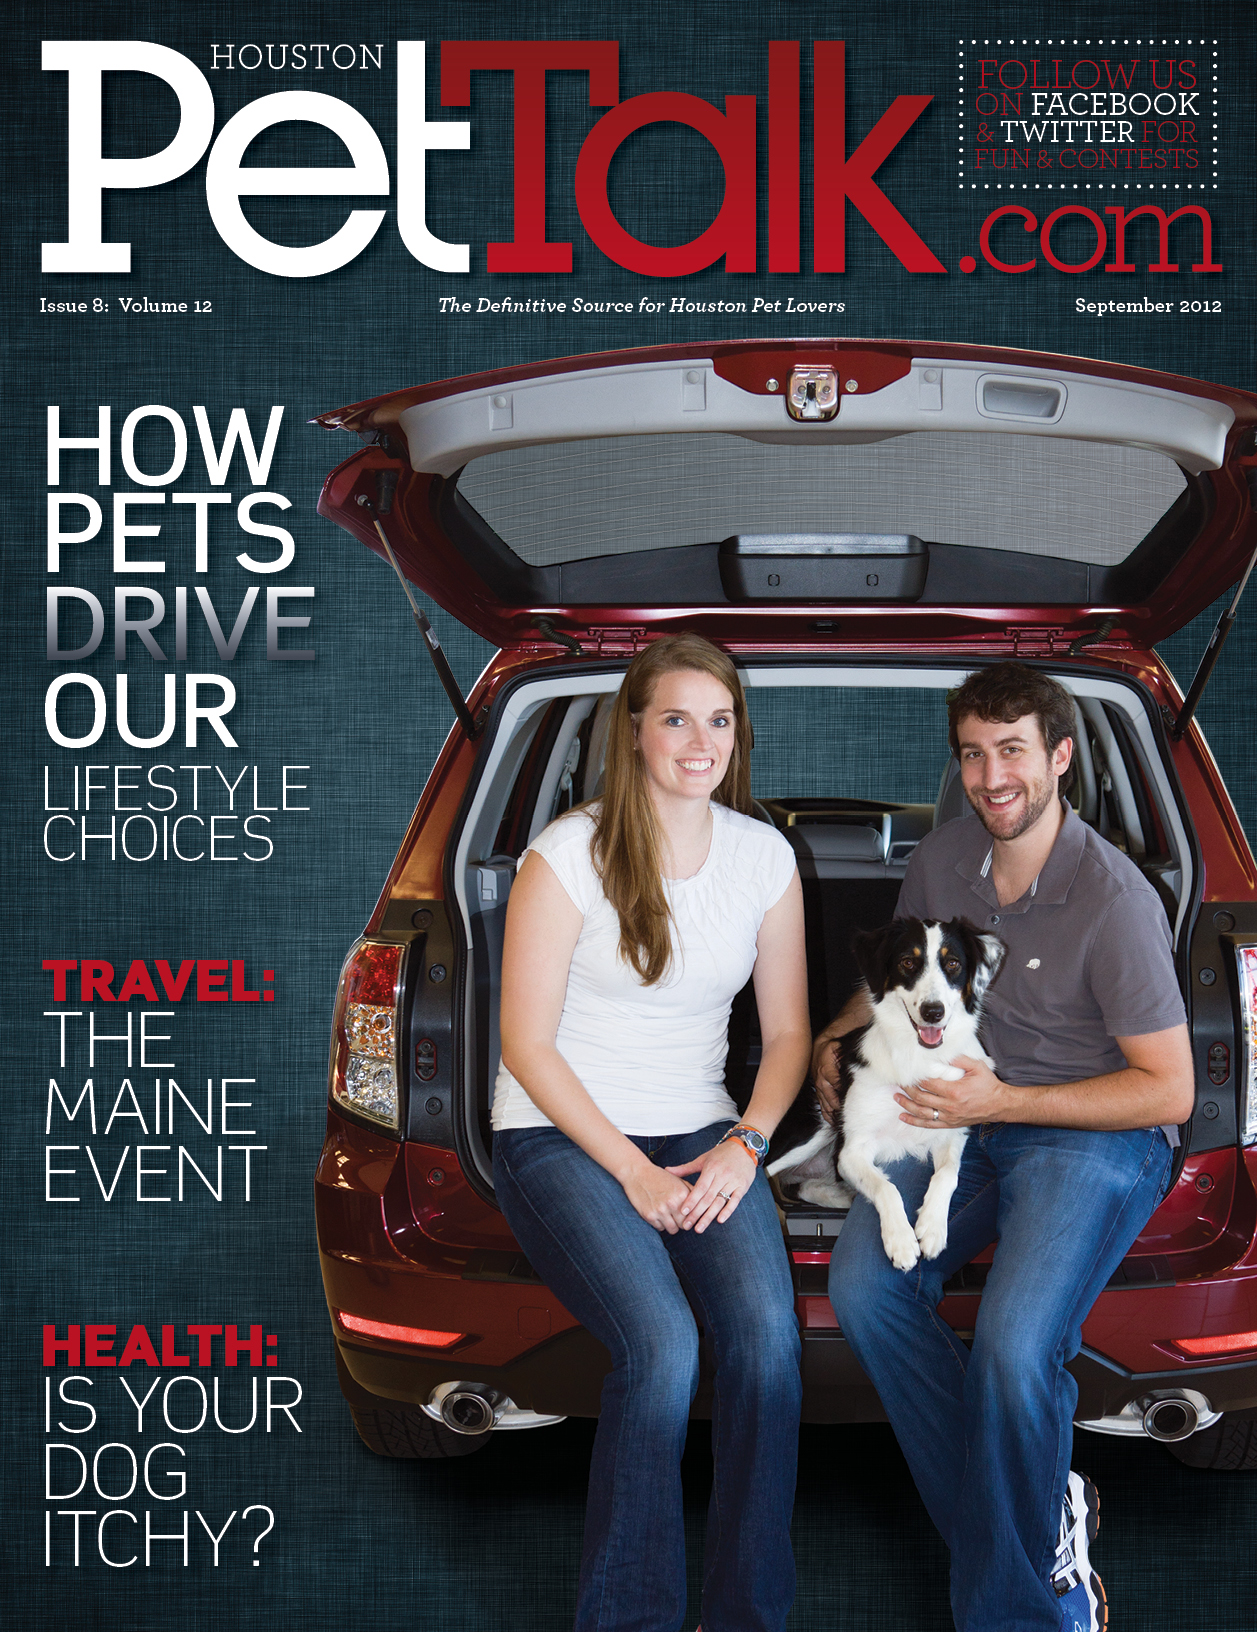 September 2012 Digital Issue of Houston PetTalk